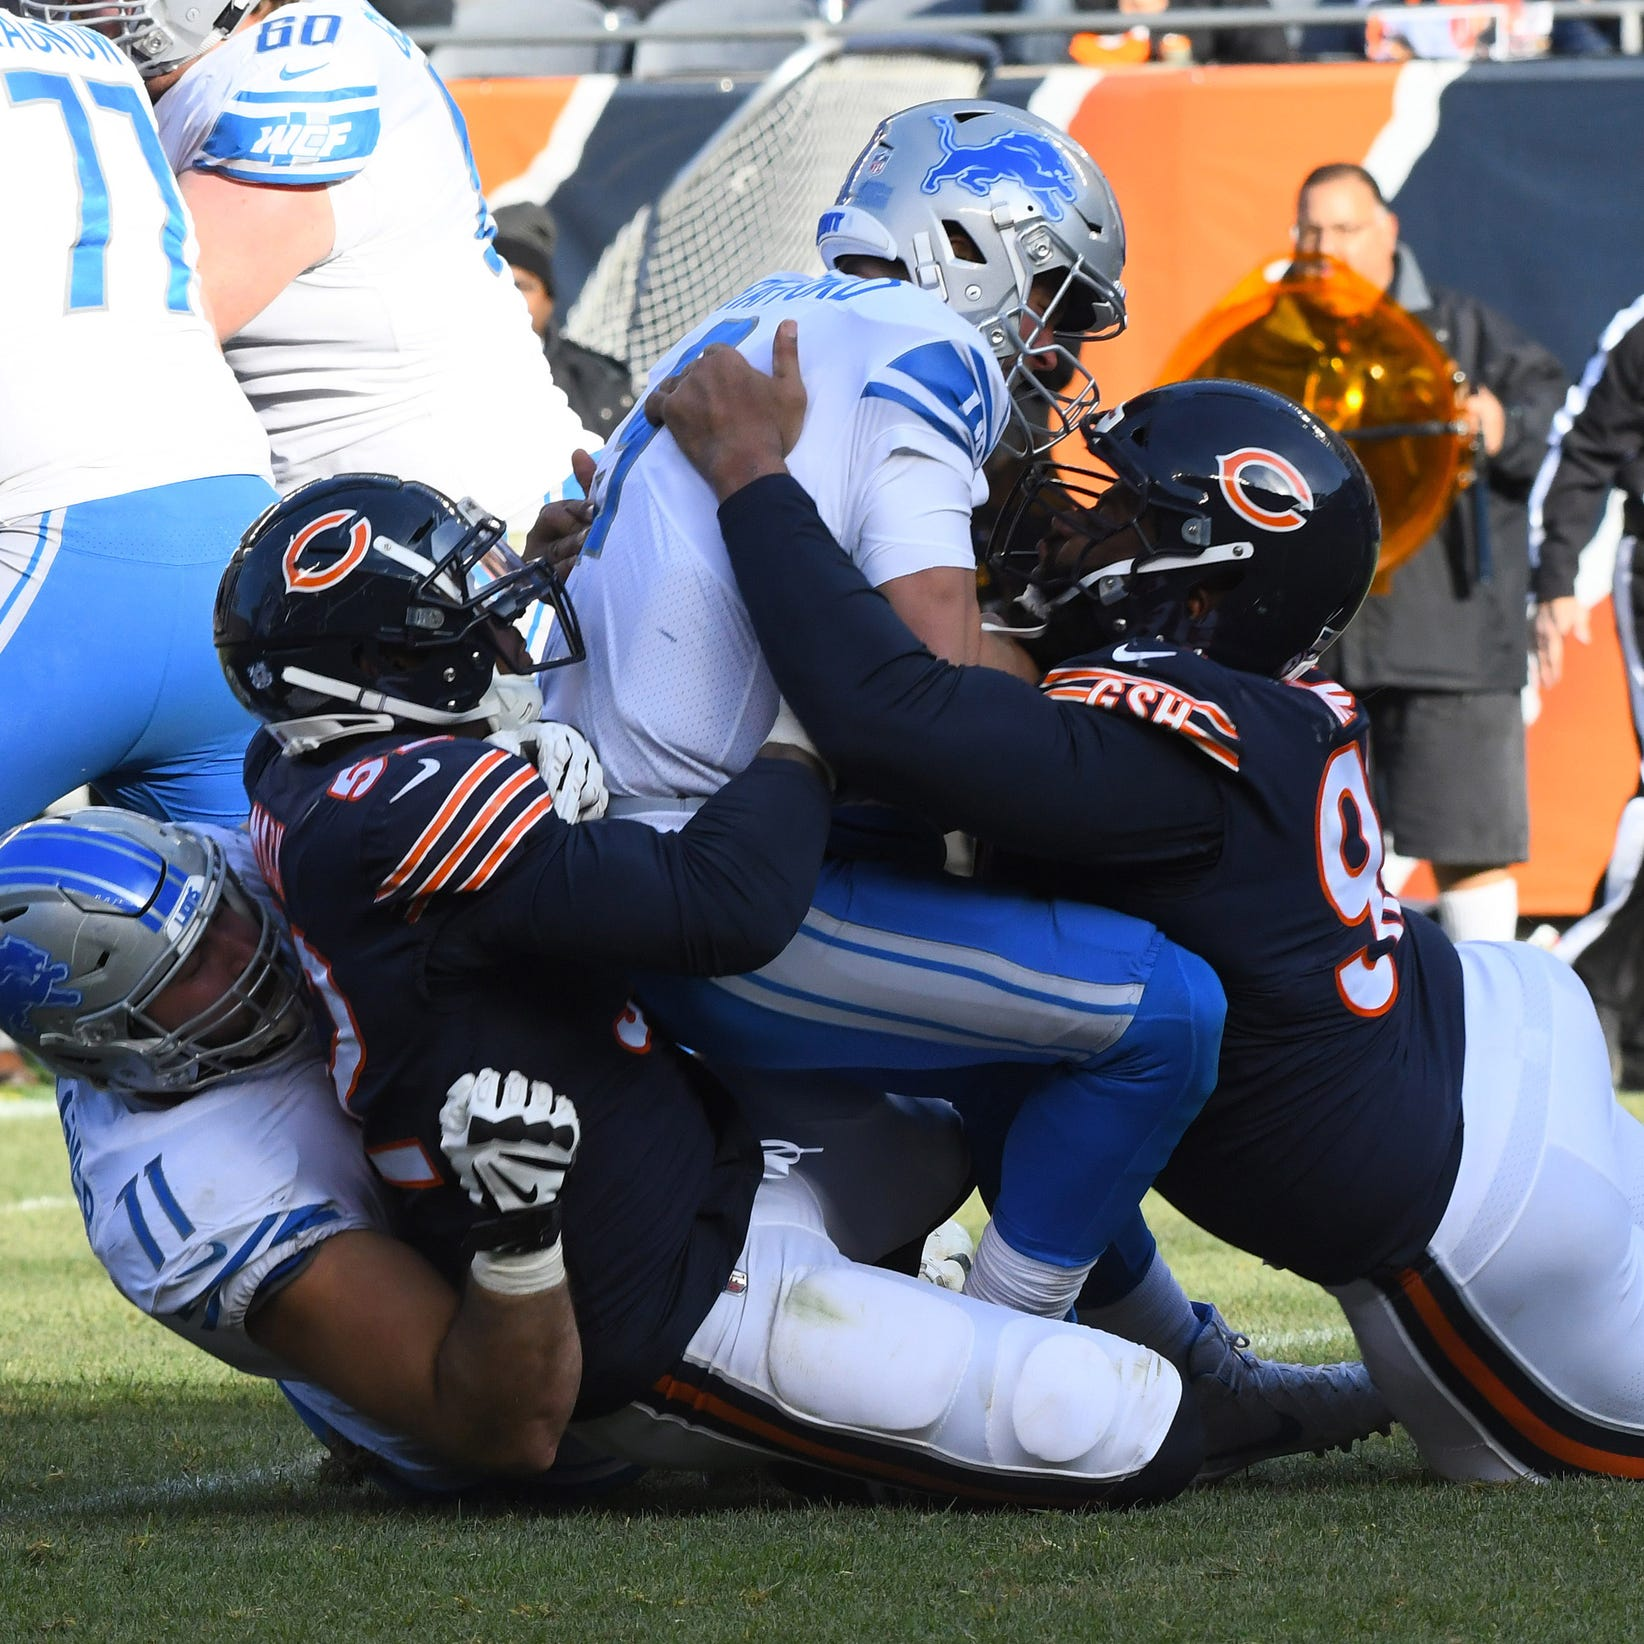 Detroit Lions' Matthew Stafford in 'not a good situation' as sacks mount